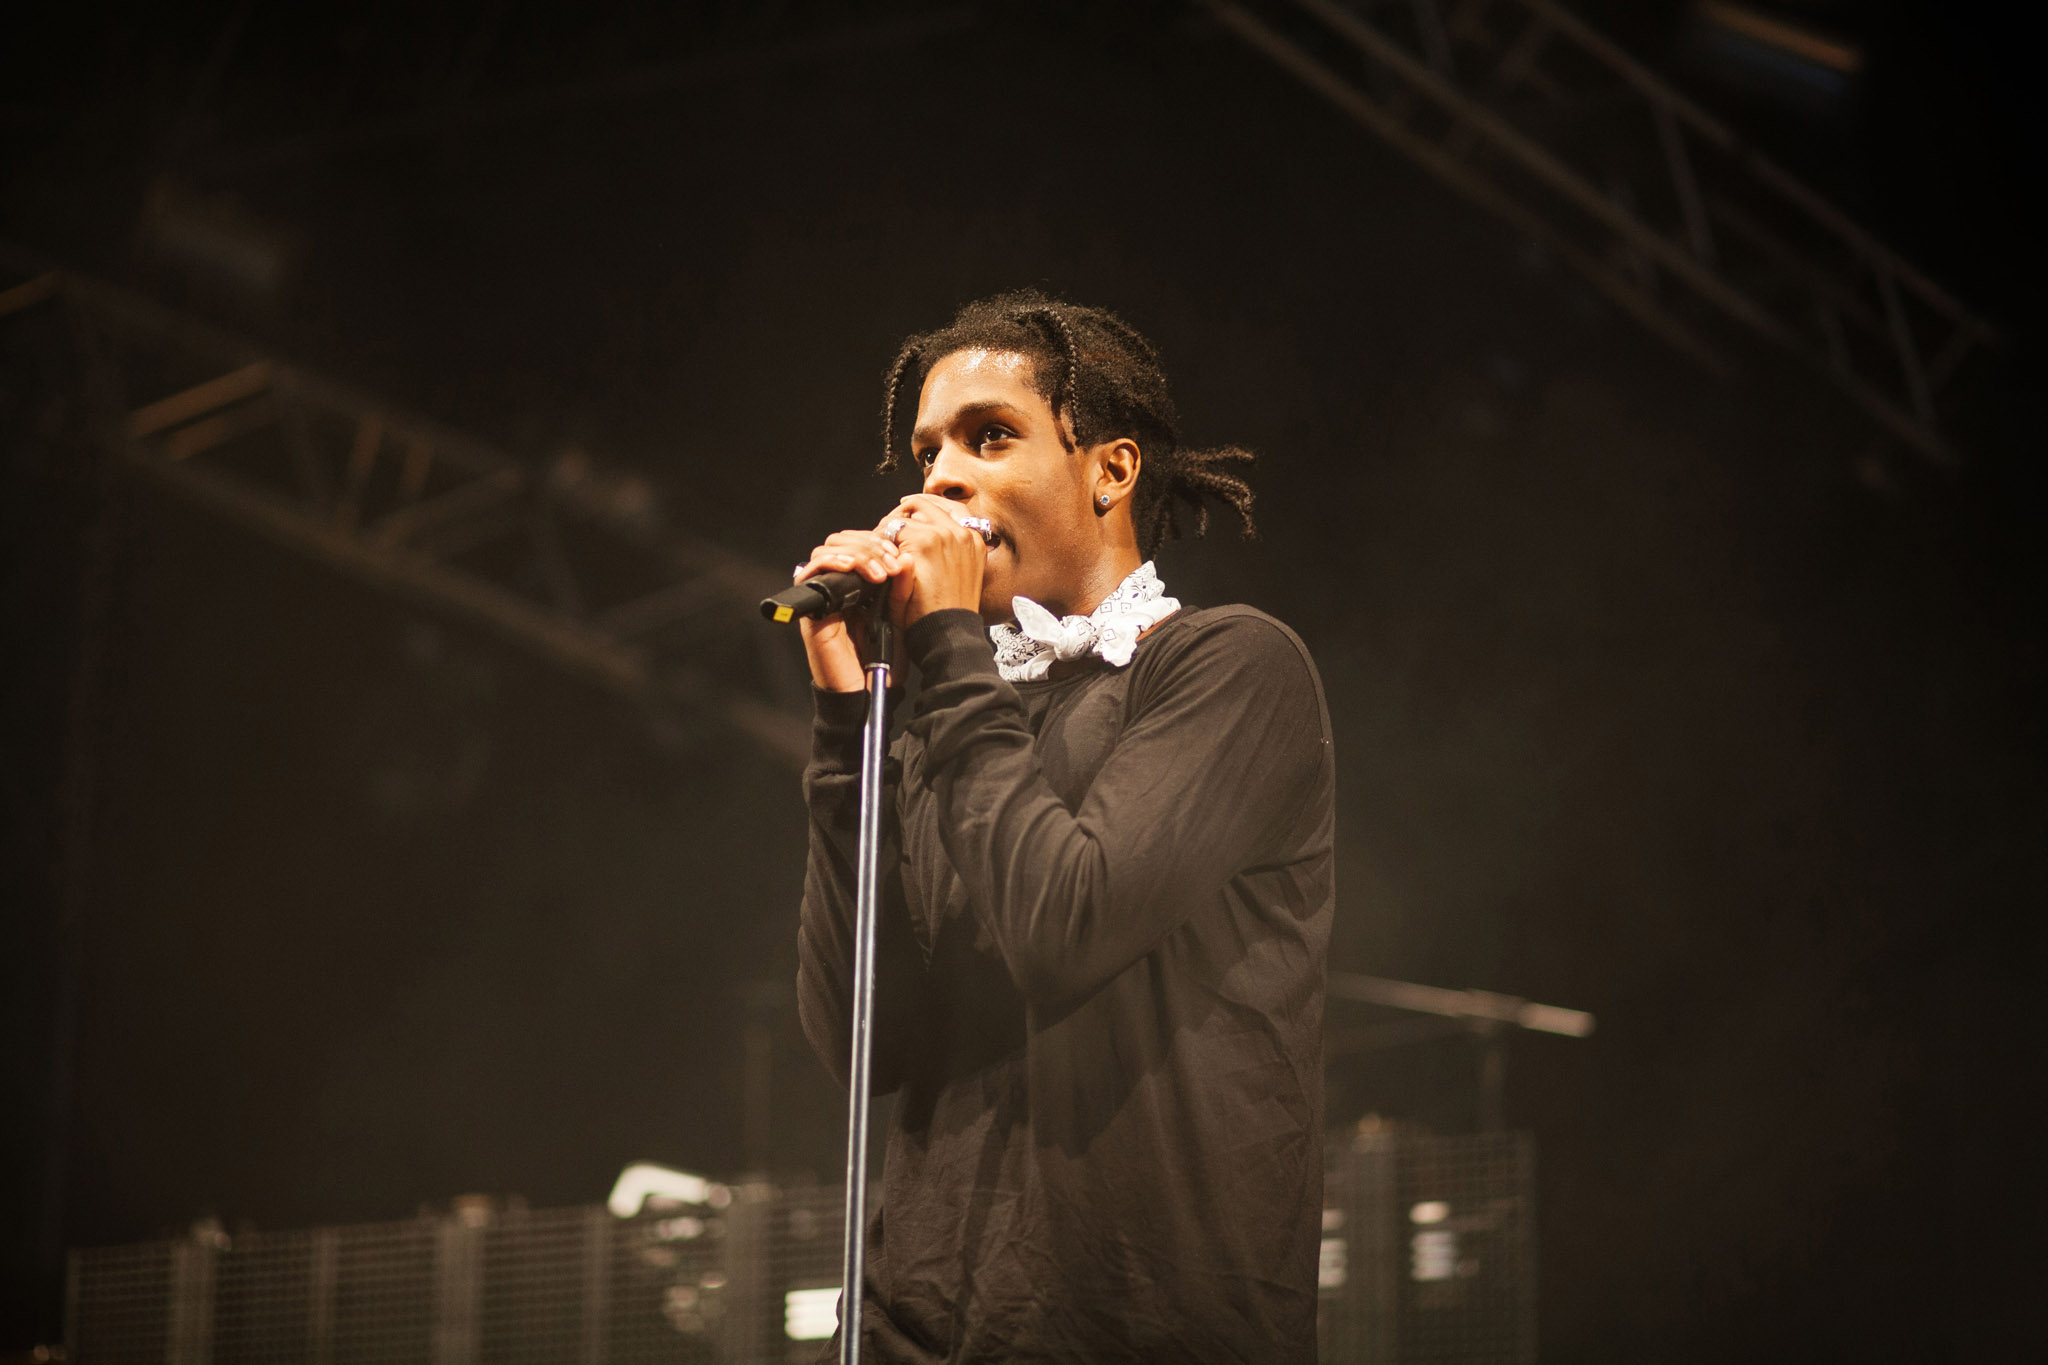 Footage emerges of A$AP Rocky getting into a fight on London's Brick Lane